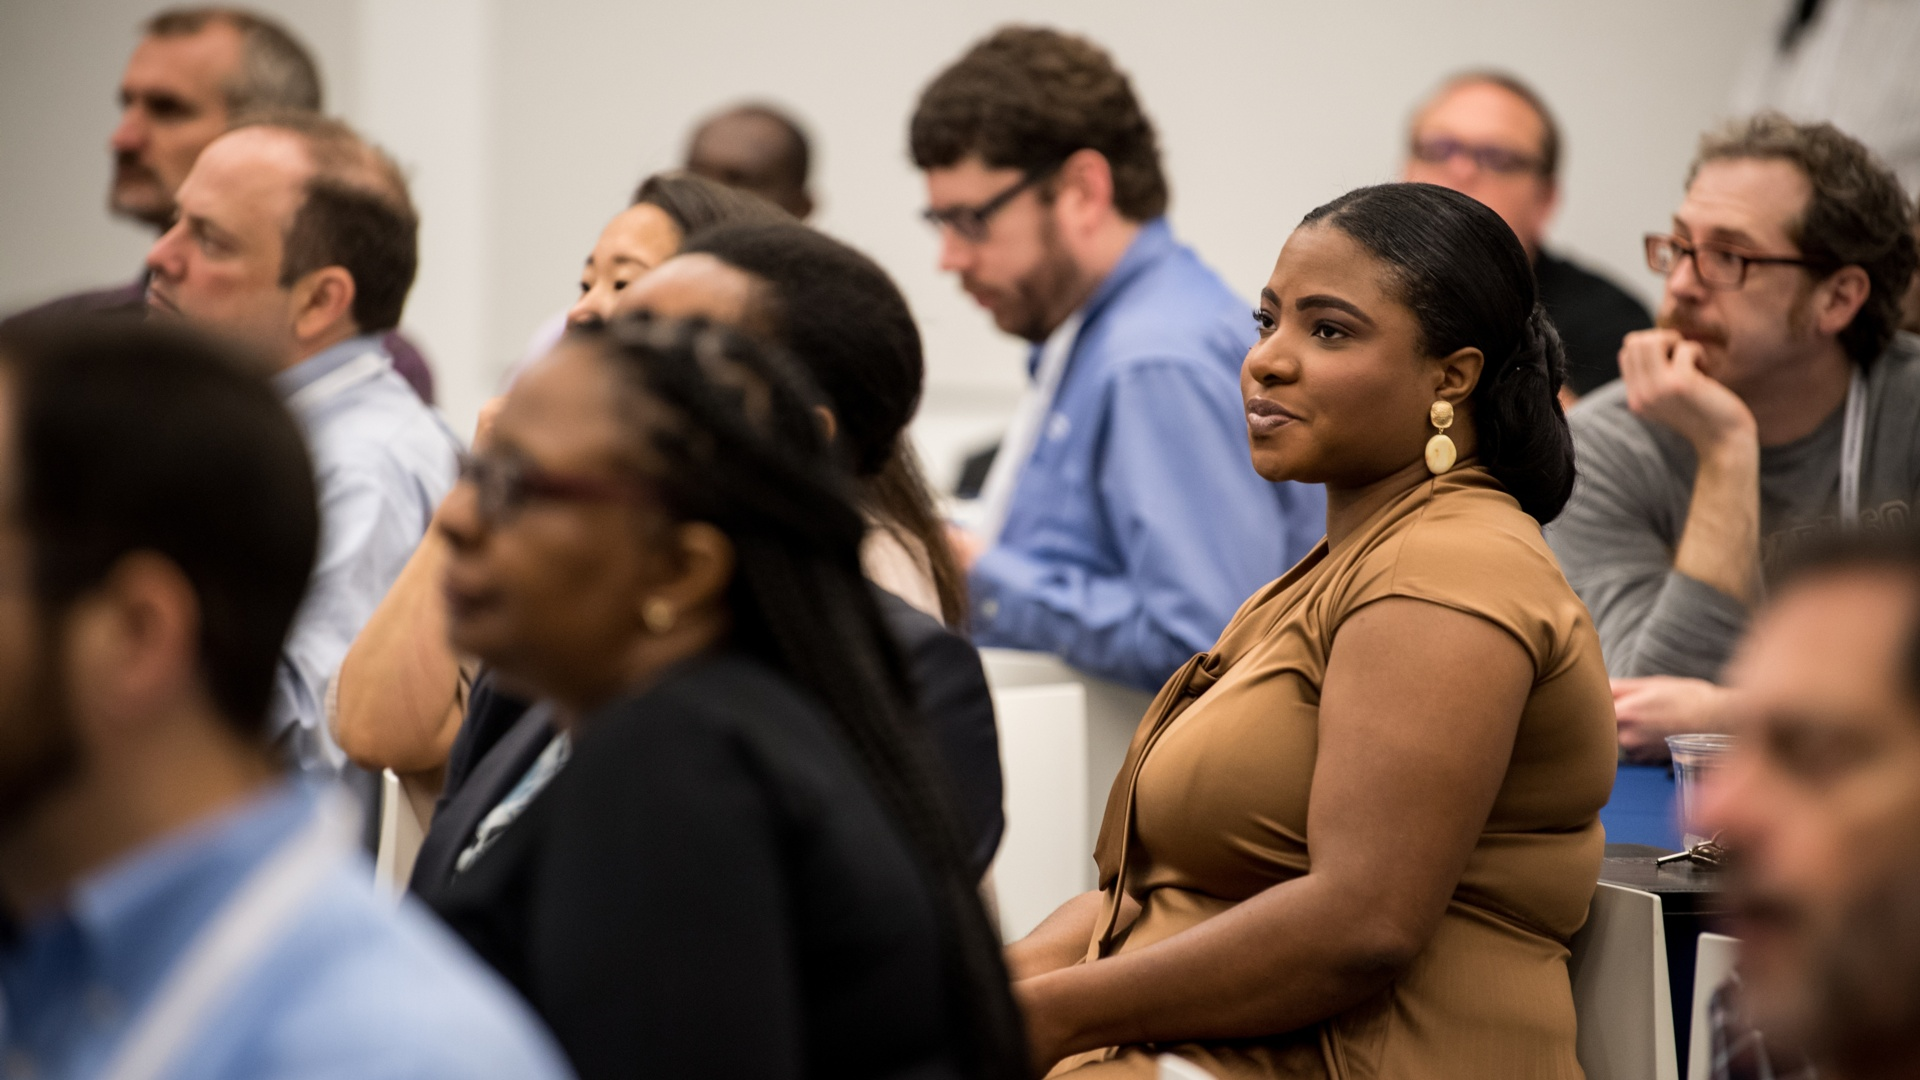 AUWCL's Commitment to Anti-Racism